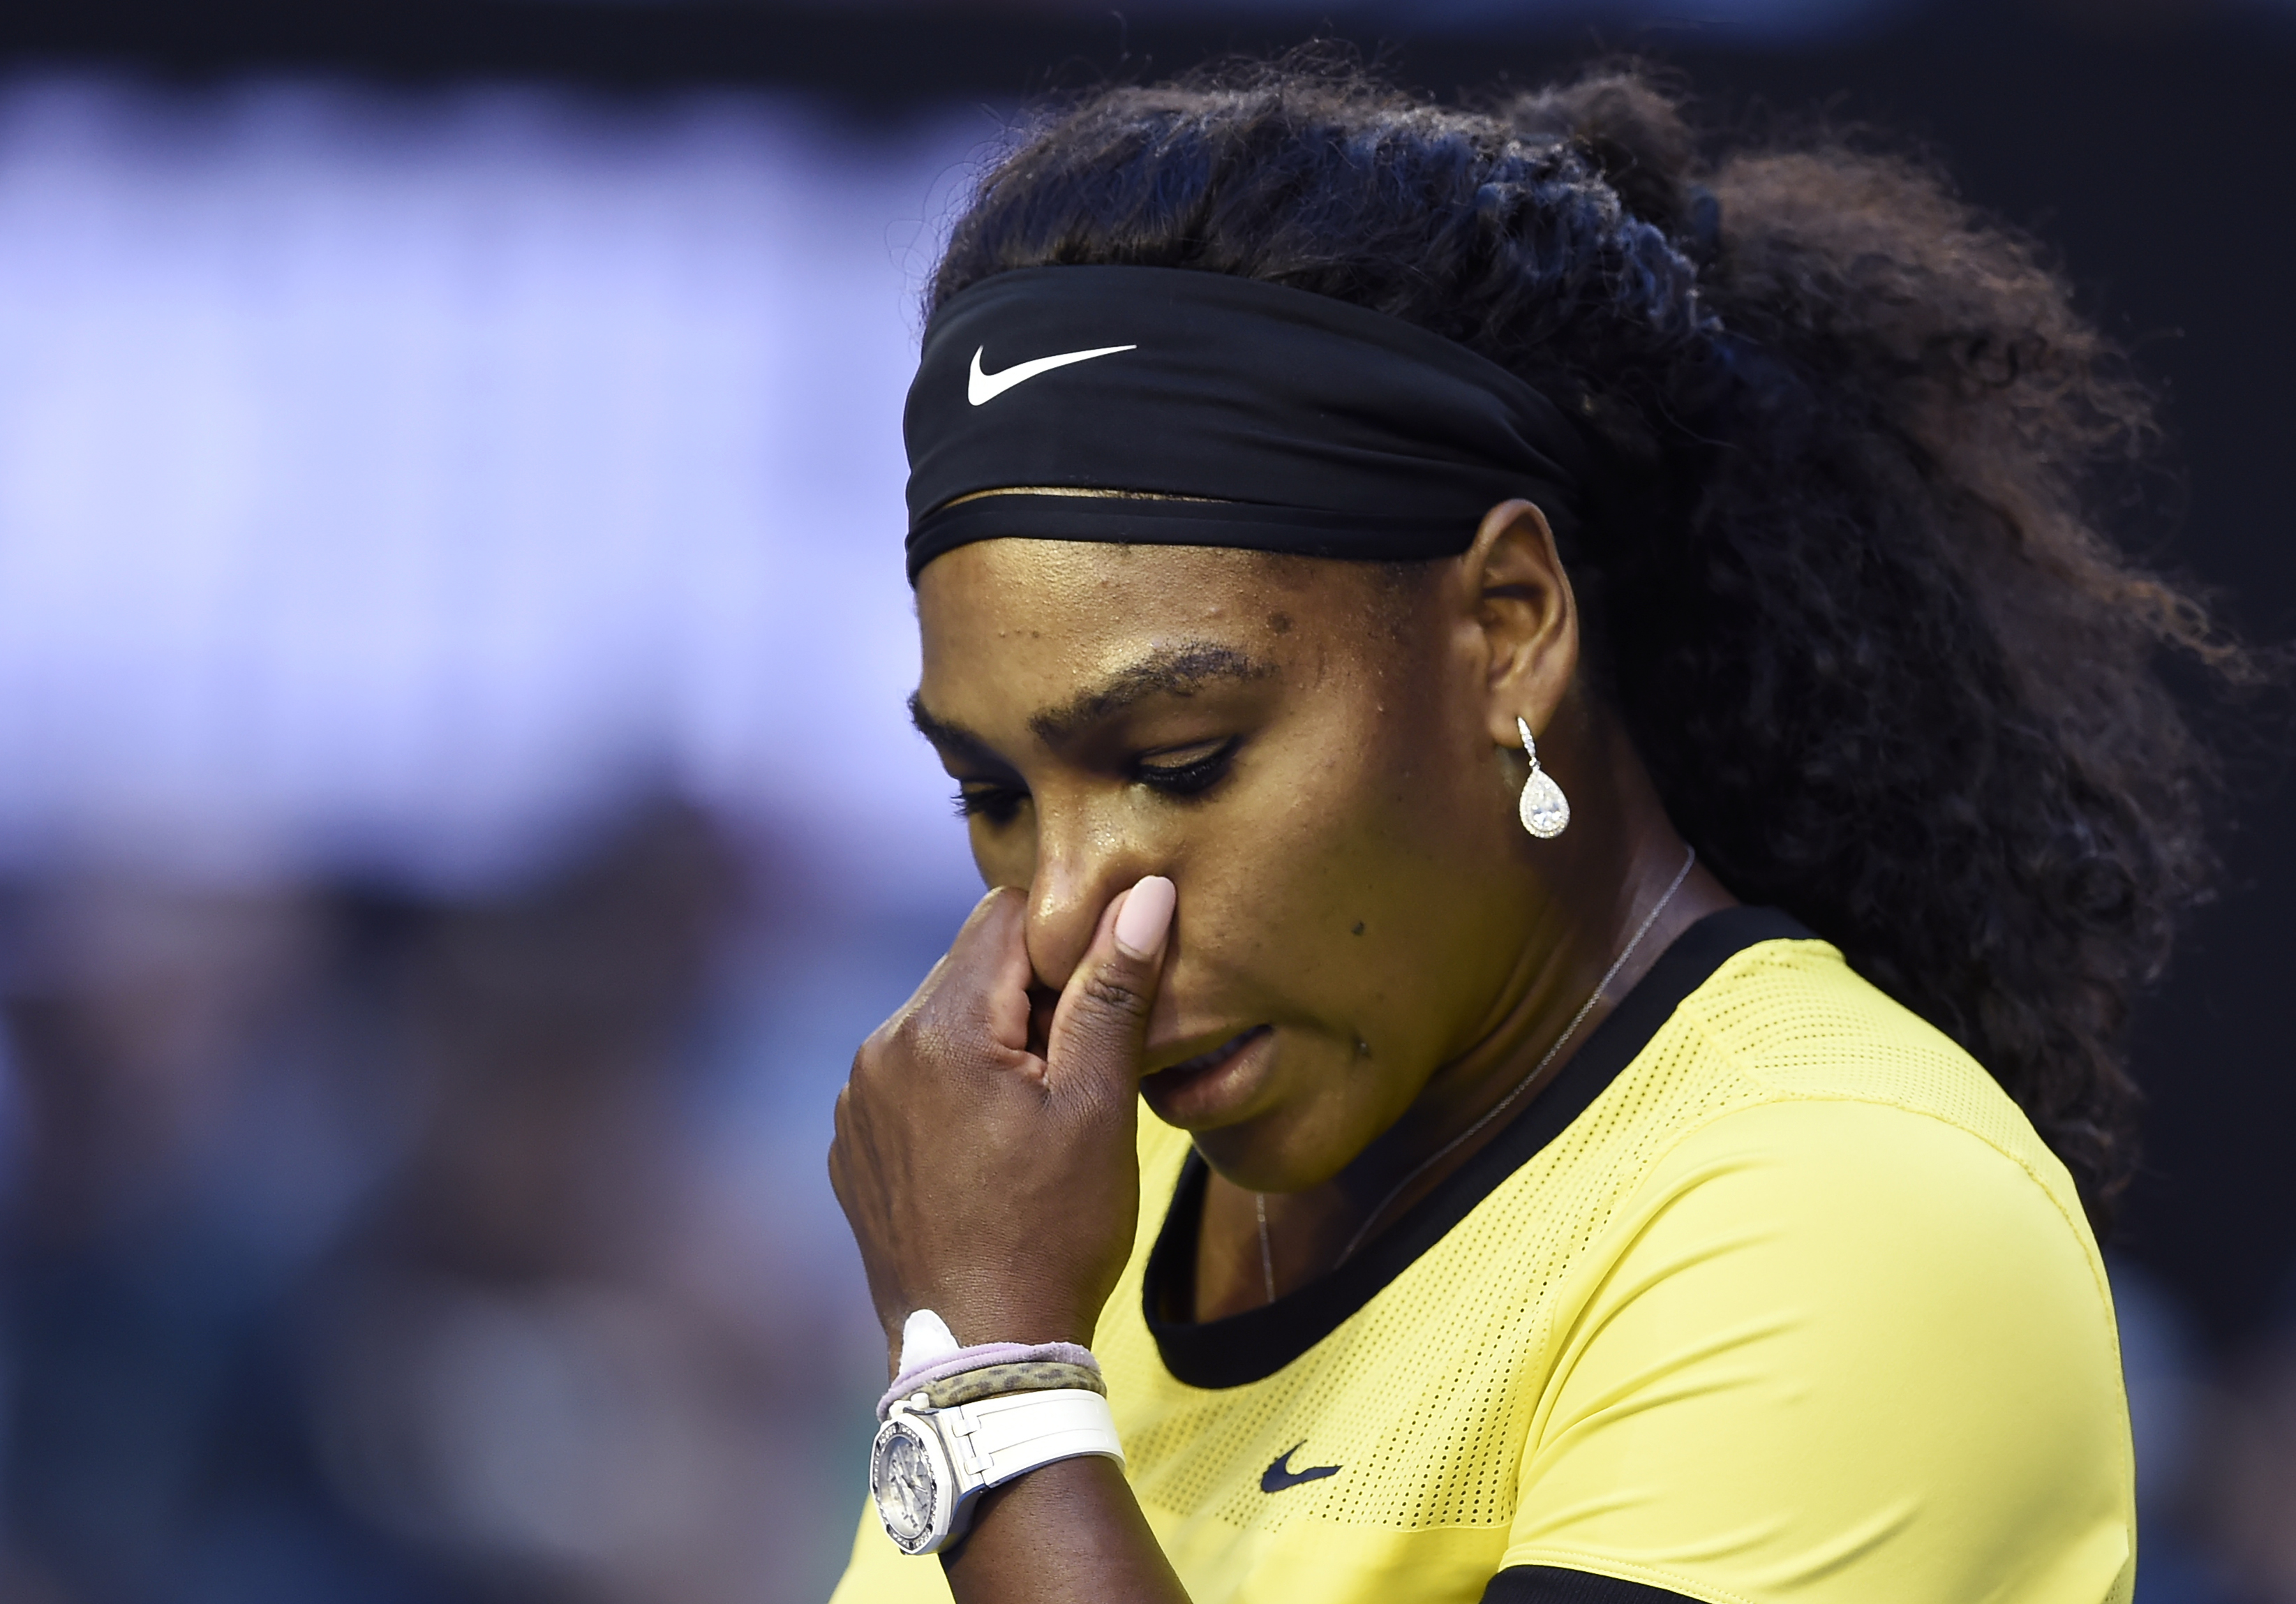 Serena Williams of the United States walks to her chair during a break in her women's singles final match against Angelique Kerber of Germany at the Australian Open tennis championships in Melbourne, Australia, Saturday, Jan. 30, 2016.(AP Photo/Andrew Bro